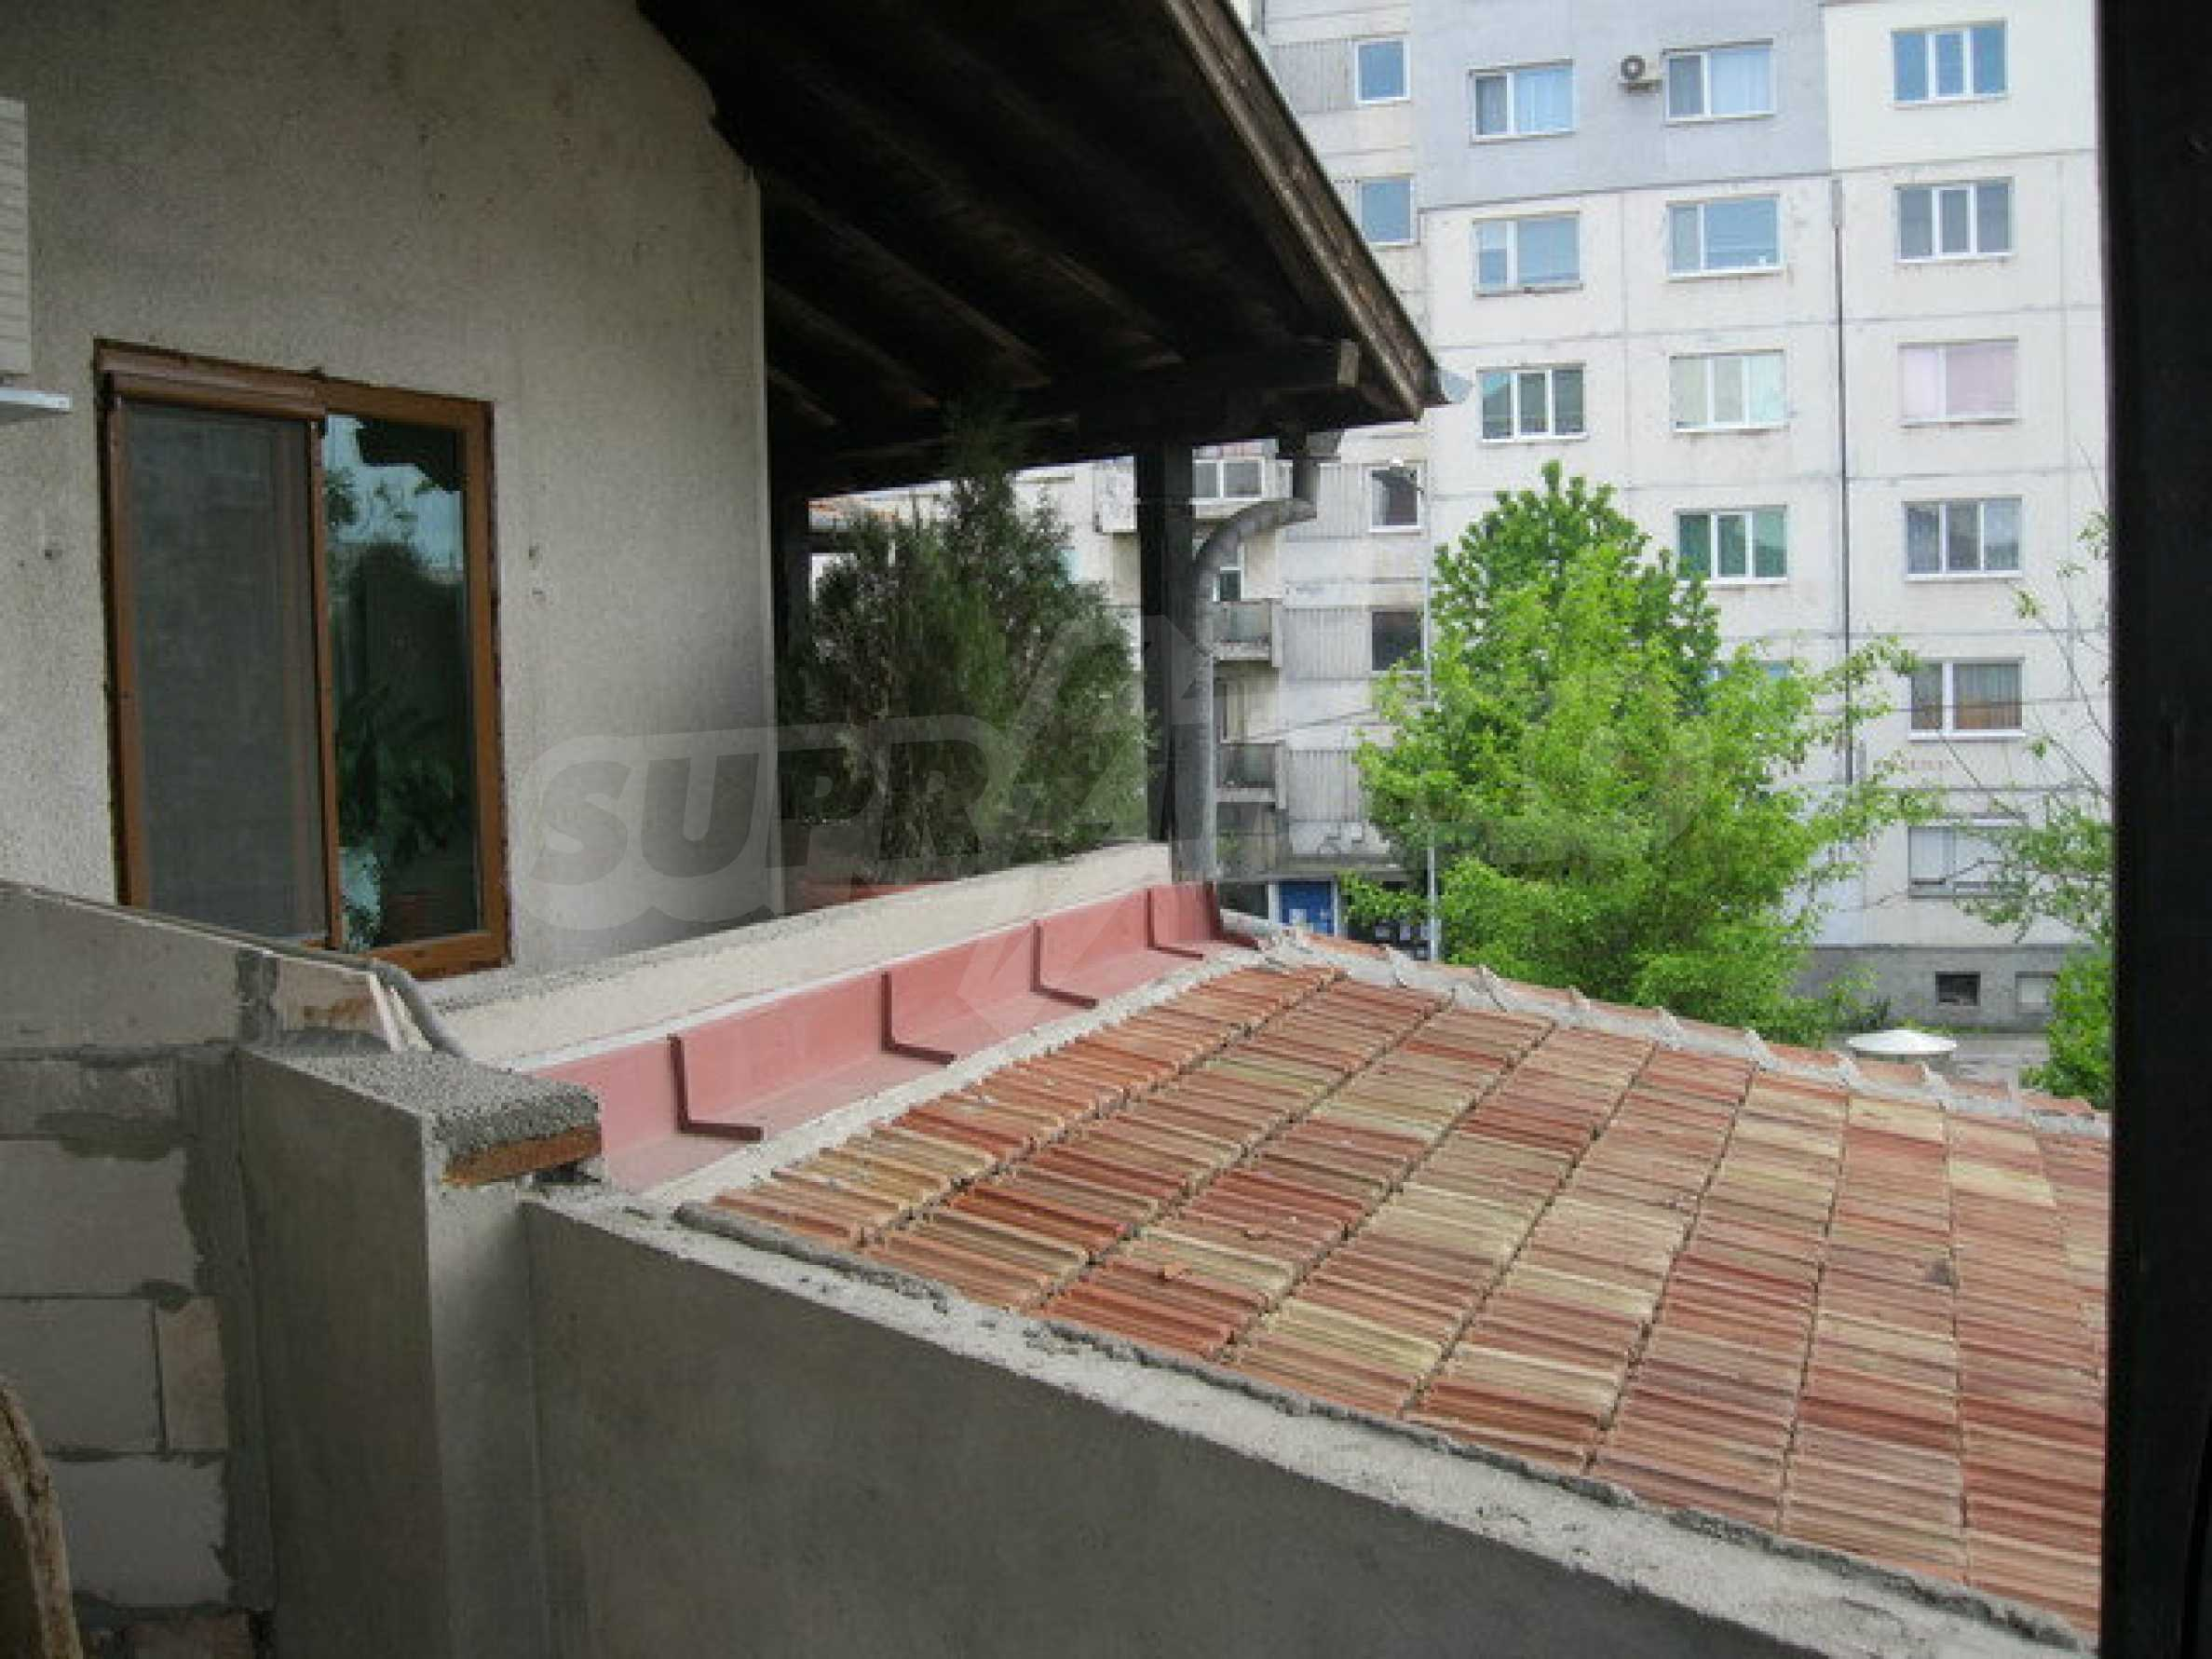 Commercial property on 3 levels for sale in Veliko Tarnovo  26